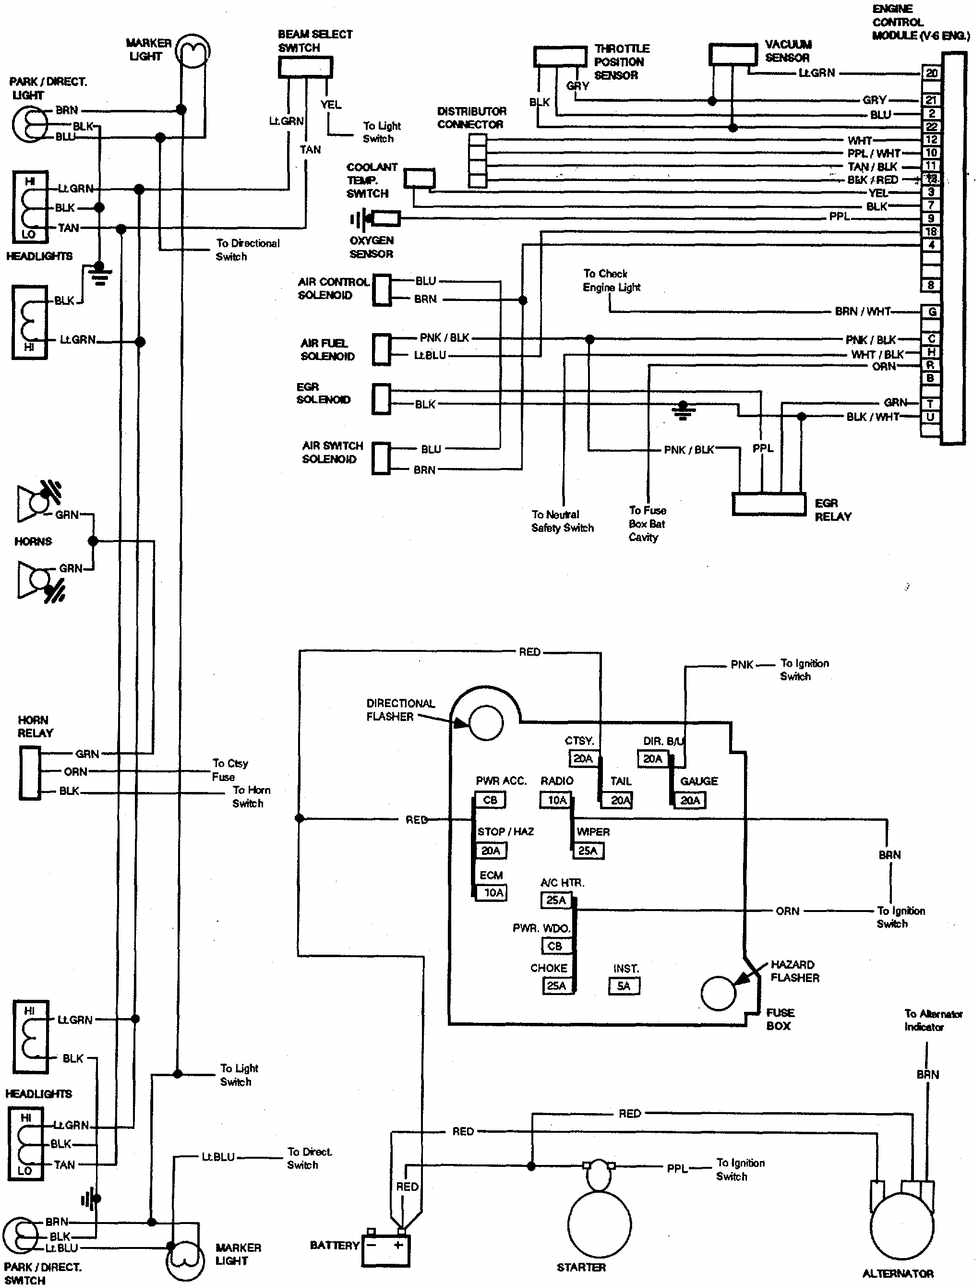 319403798544696825 as well Glow Plug Timer Wiring Diagram in addition Mitsubishi Montero Sport Radio Wiring Diagram together with Hyundai Vin Location in addition Case 1845c Fuse Box. on kubota glow plug relay location